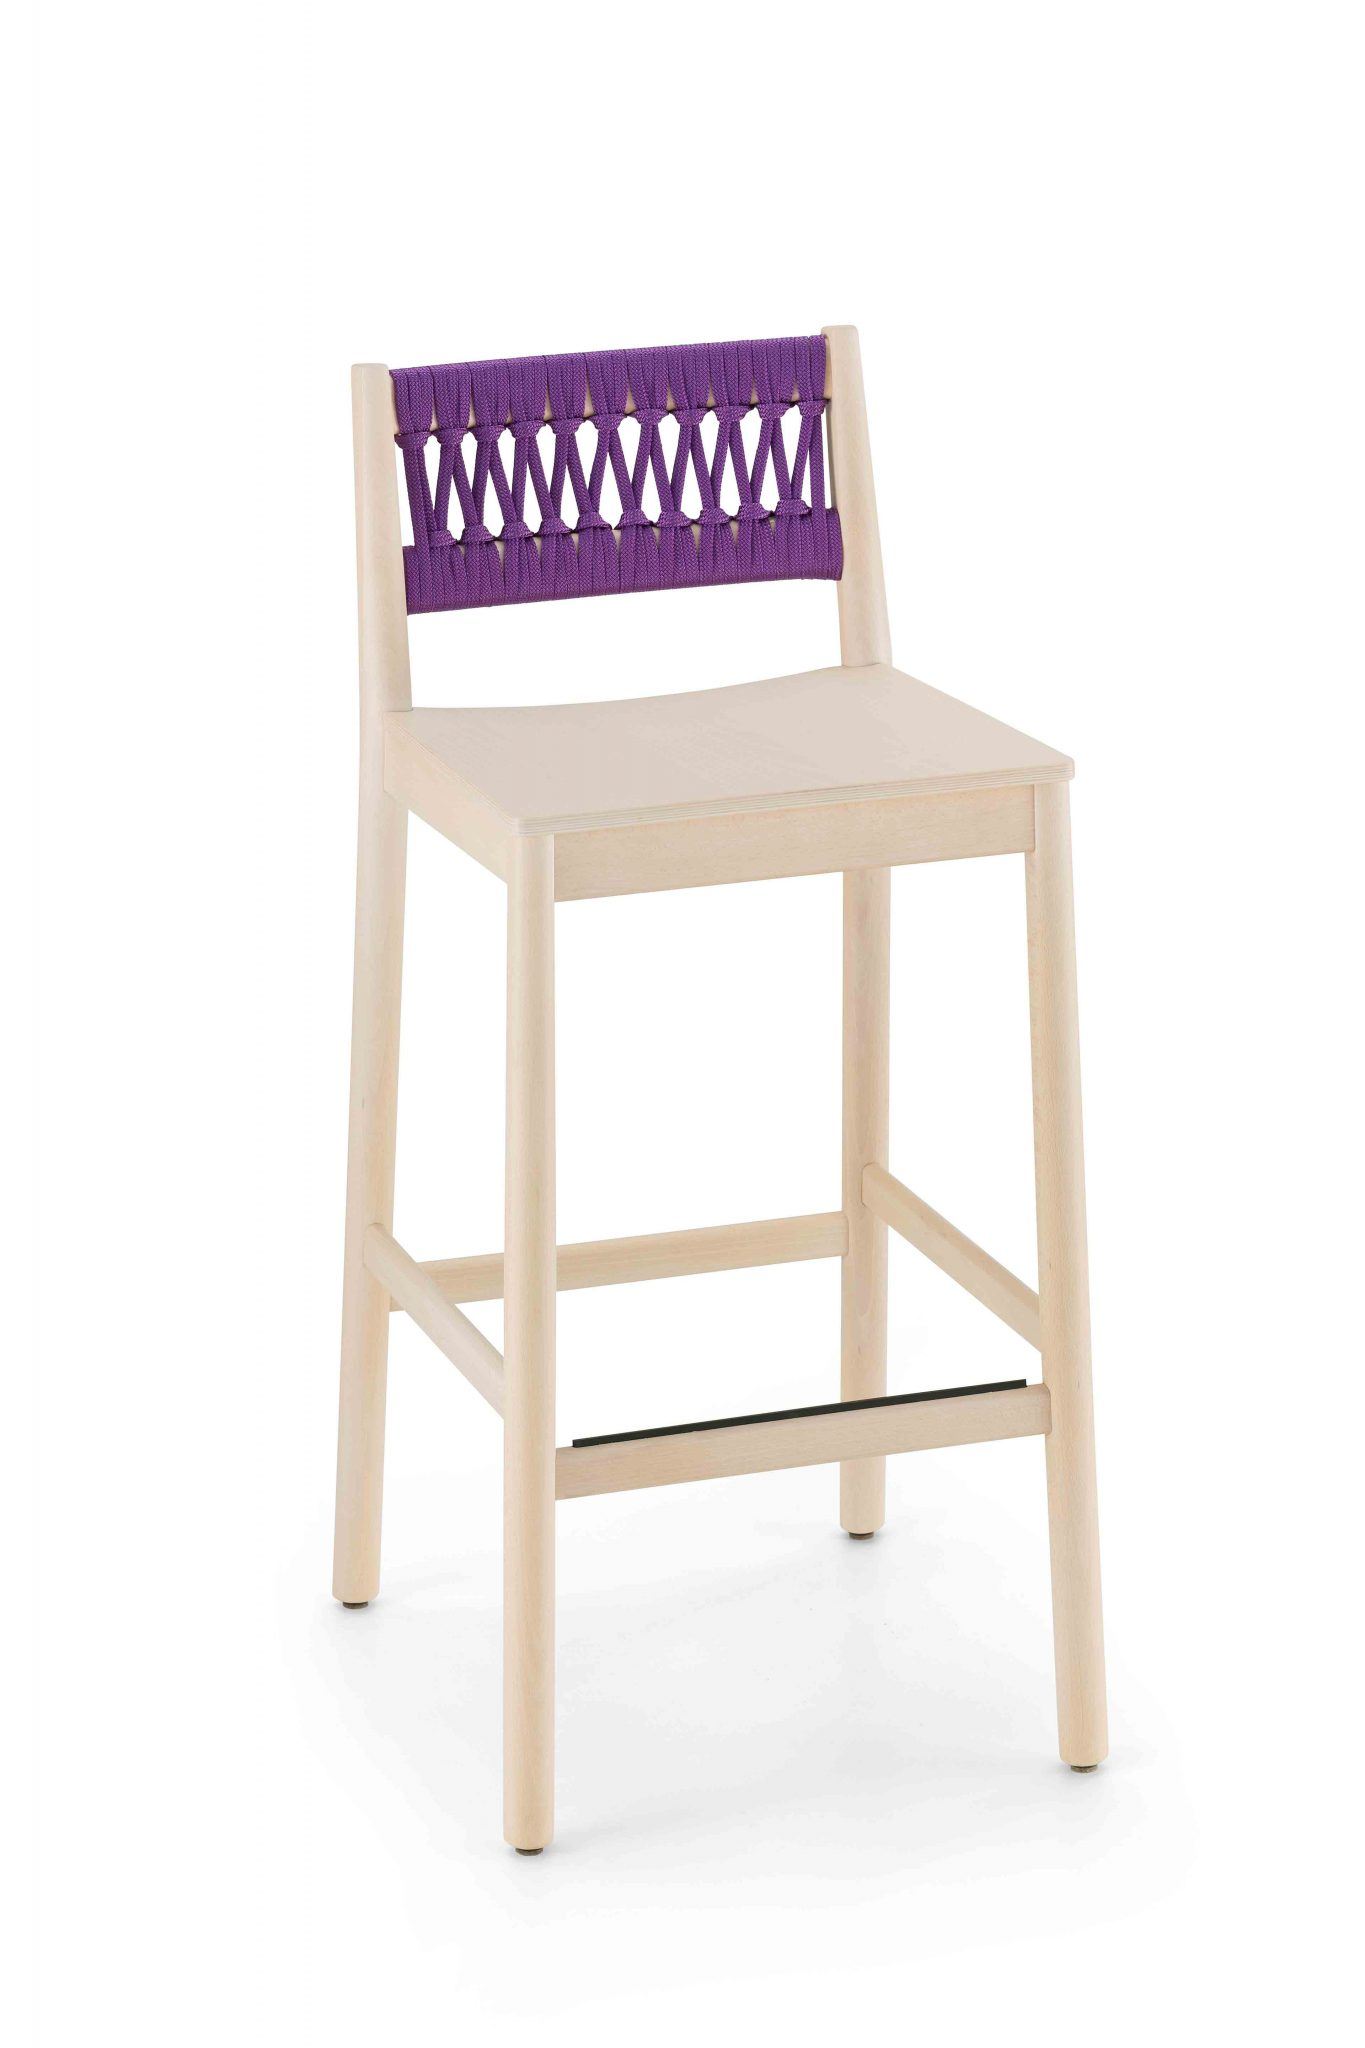 0028-IN-H76-JULIE-Sgabello-in-faggio-verniciato-e-sedile-legno,-schienale-in-corda,-stool-in-beech-painted-and-wood-seat,-back-in-rope